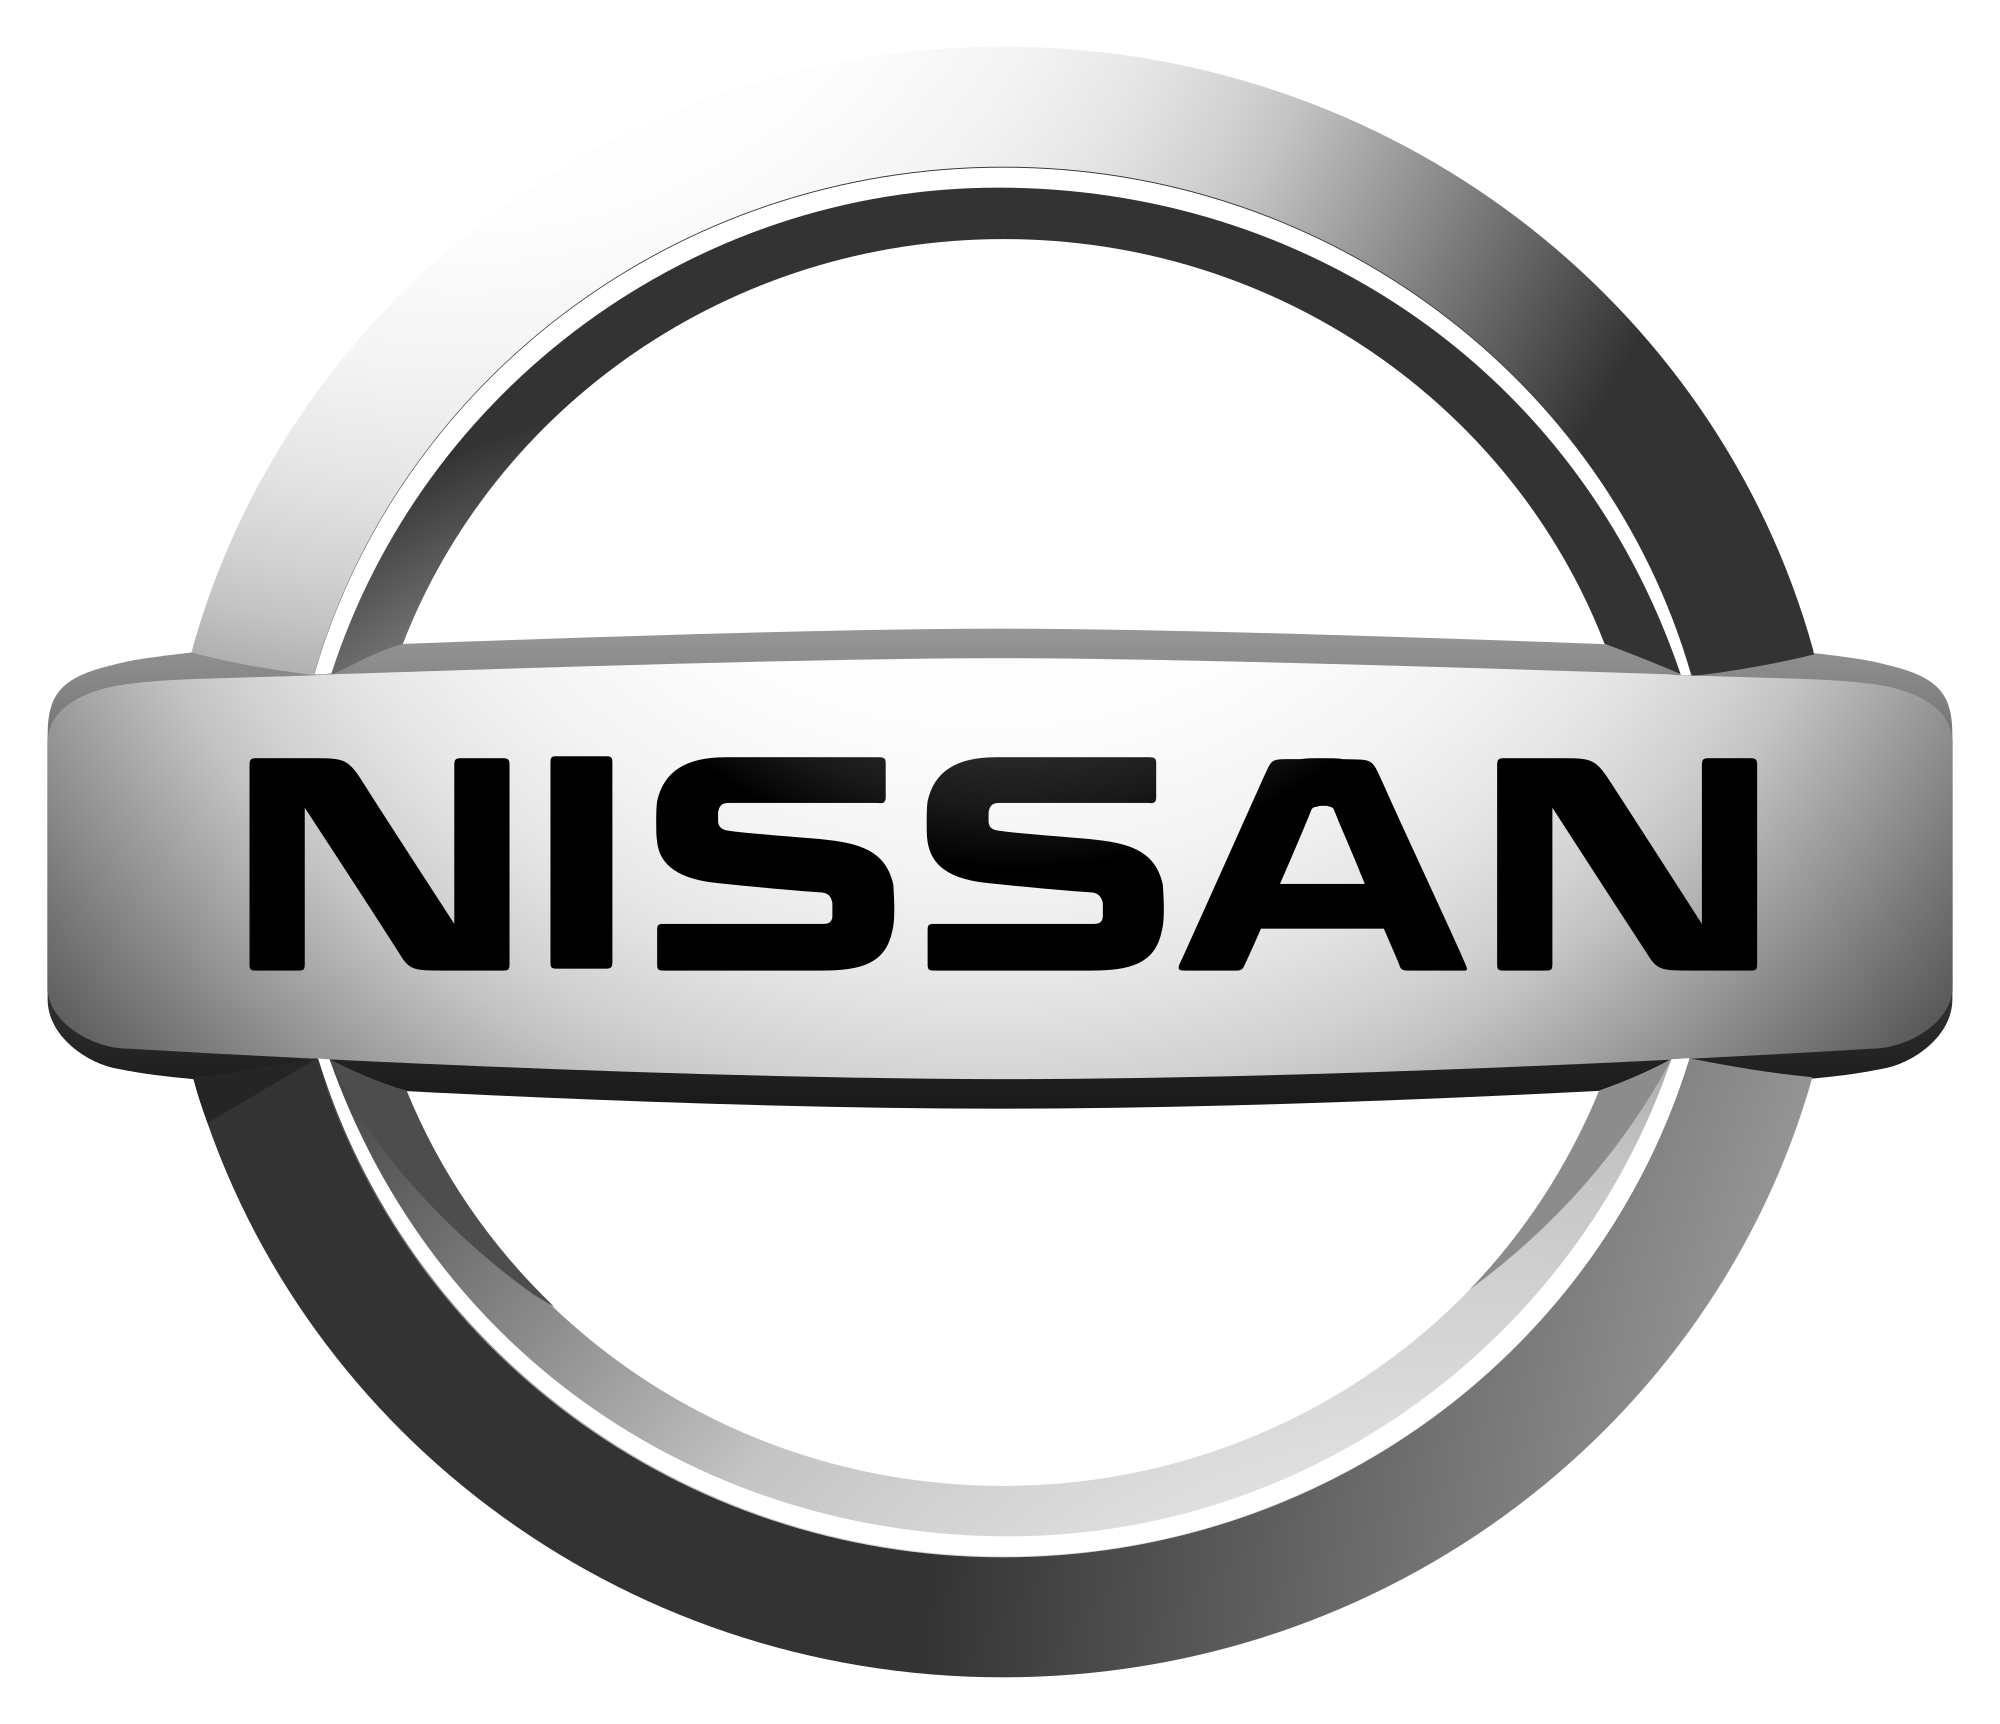 Nissan to source more UK batteries as part of Brexit deal 'opportunity'